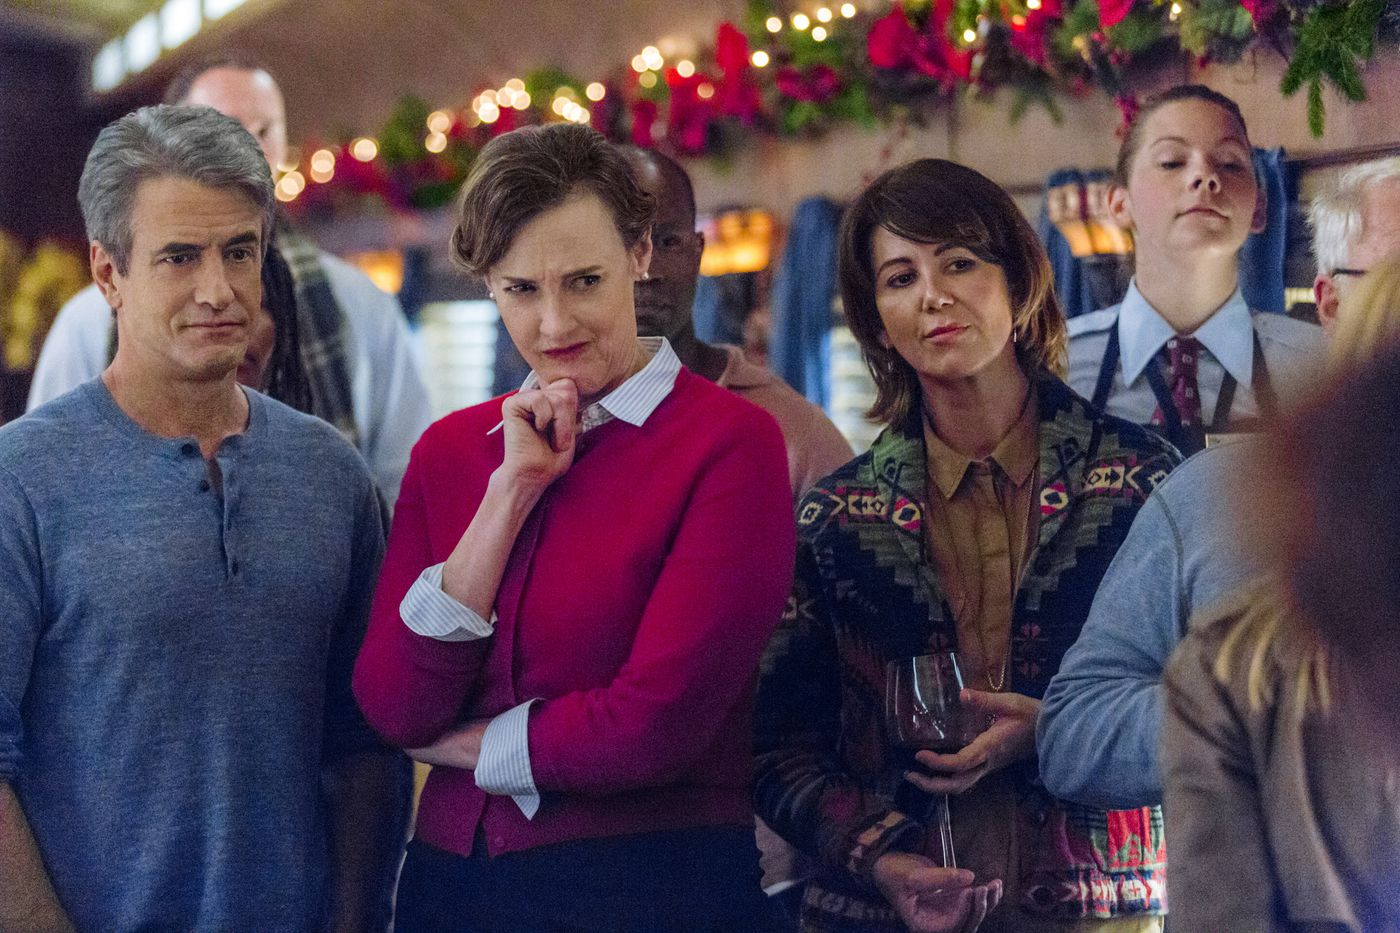 Switched For Christmas Cast.Hallmark Christmas Movies Explained Vox